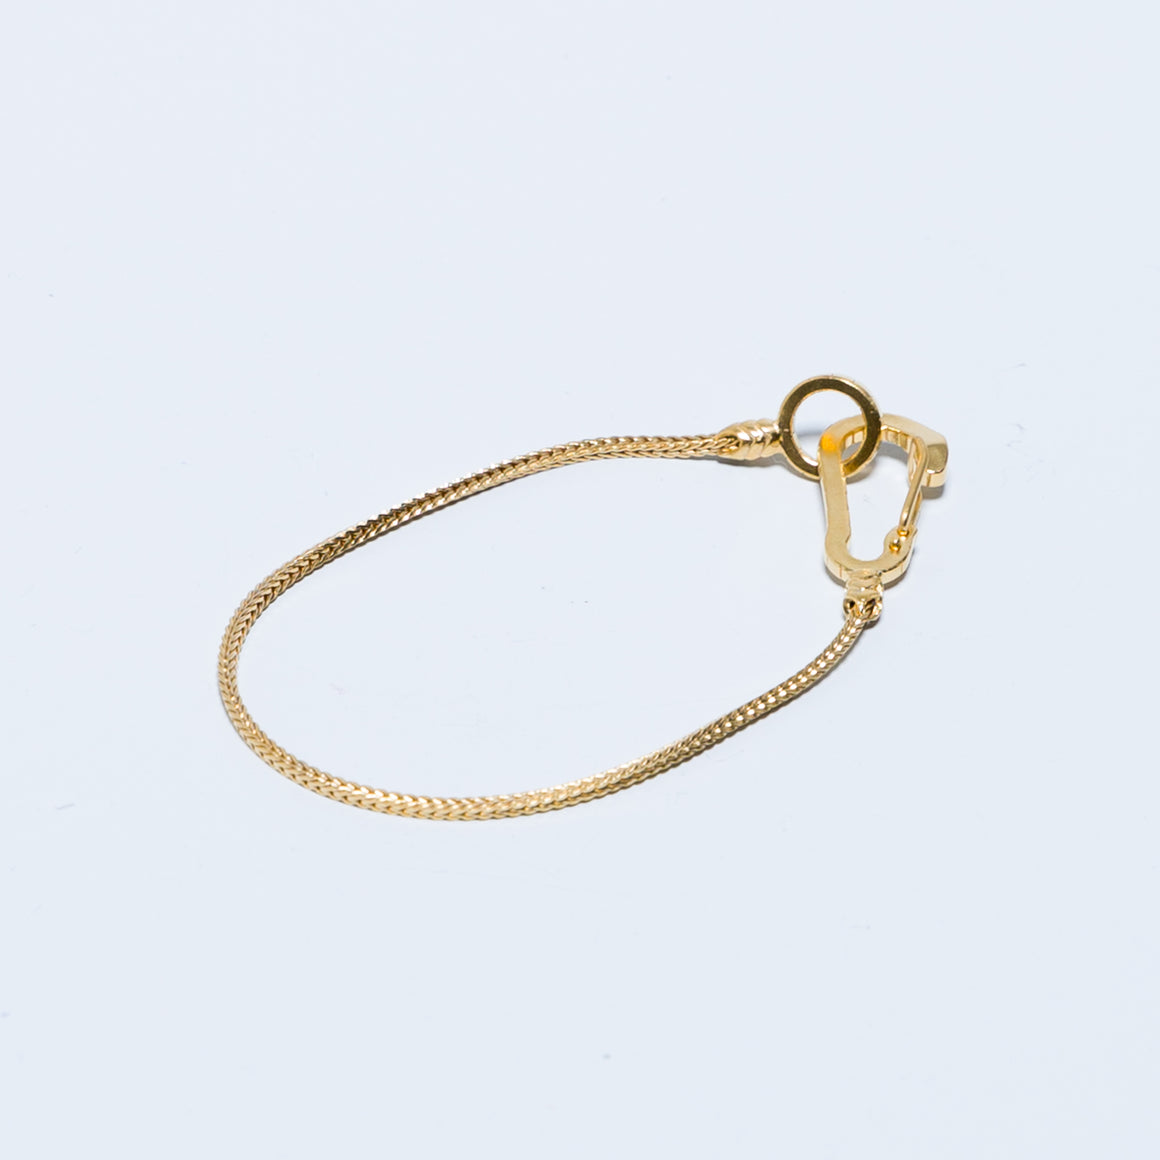 Snake Karabiner Bracelet - Brass - Up There